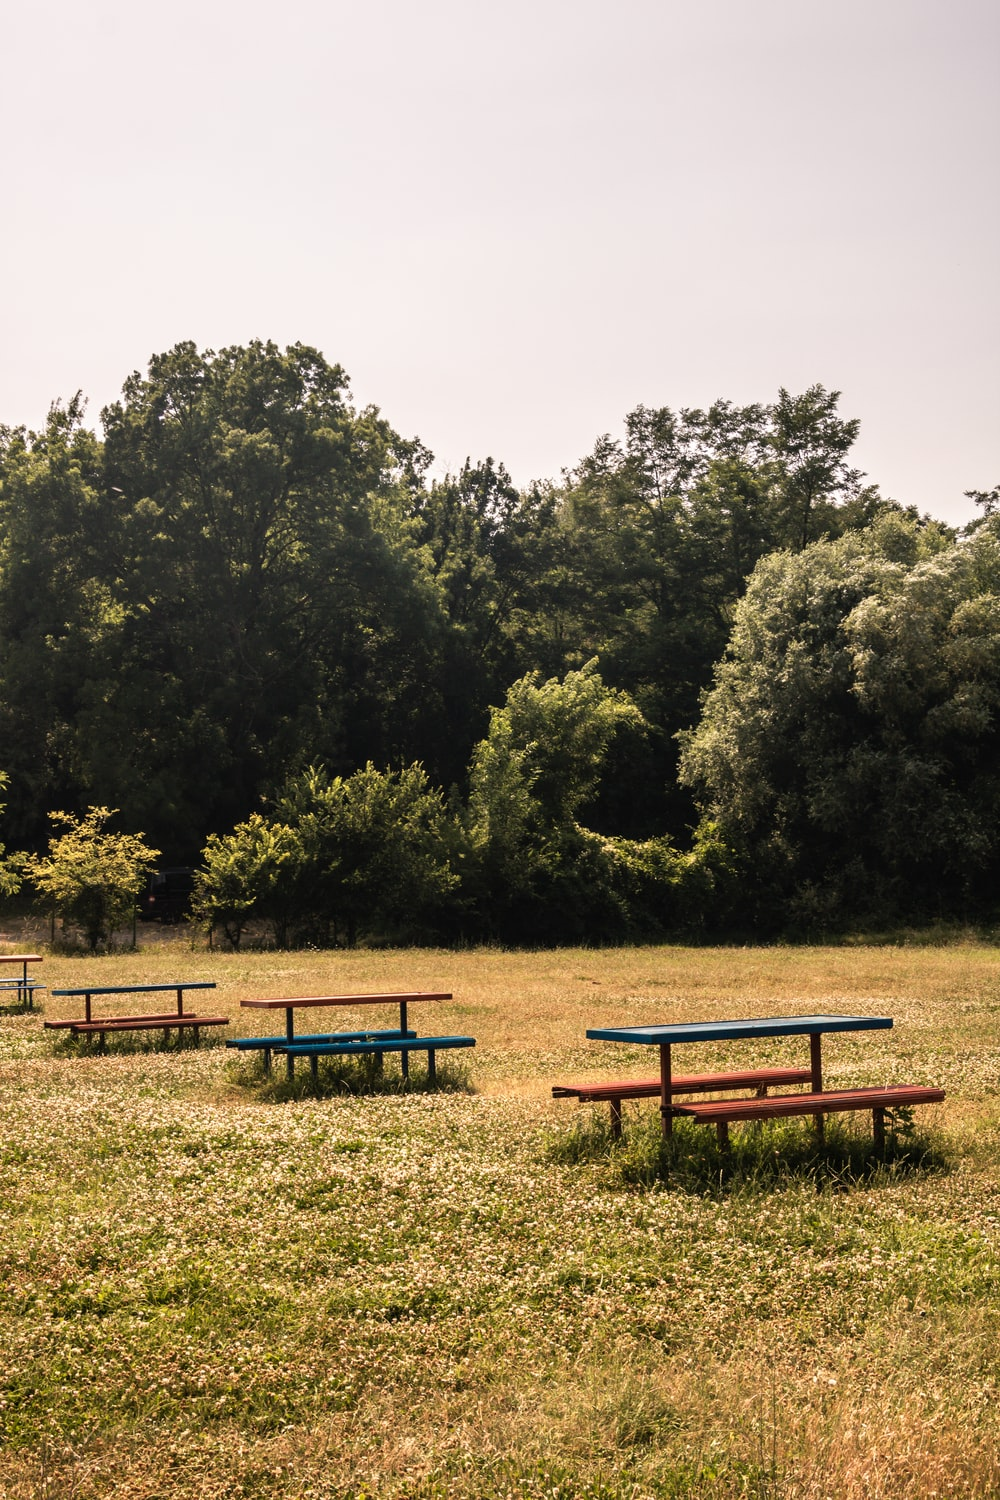 brown wooden bench near green trees during daytime